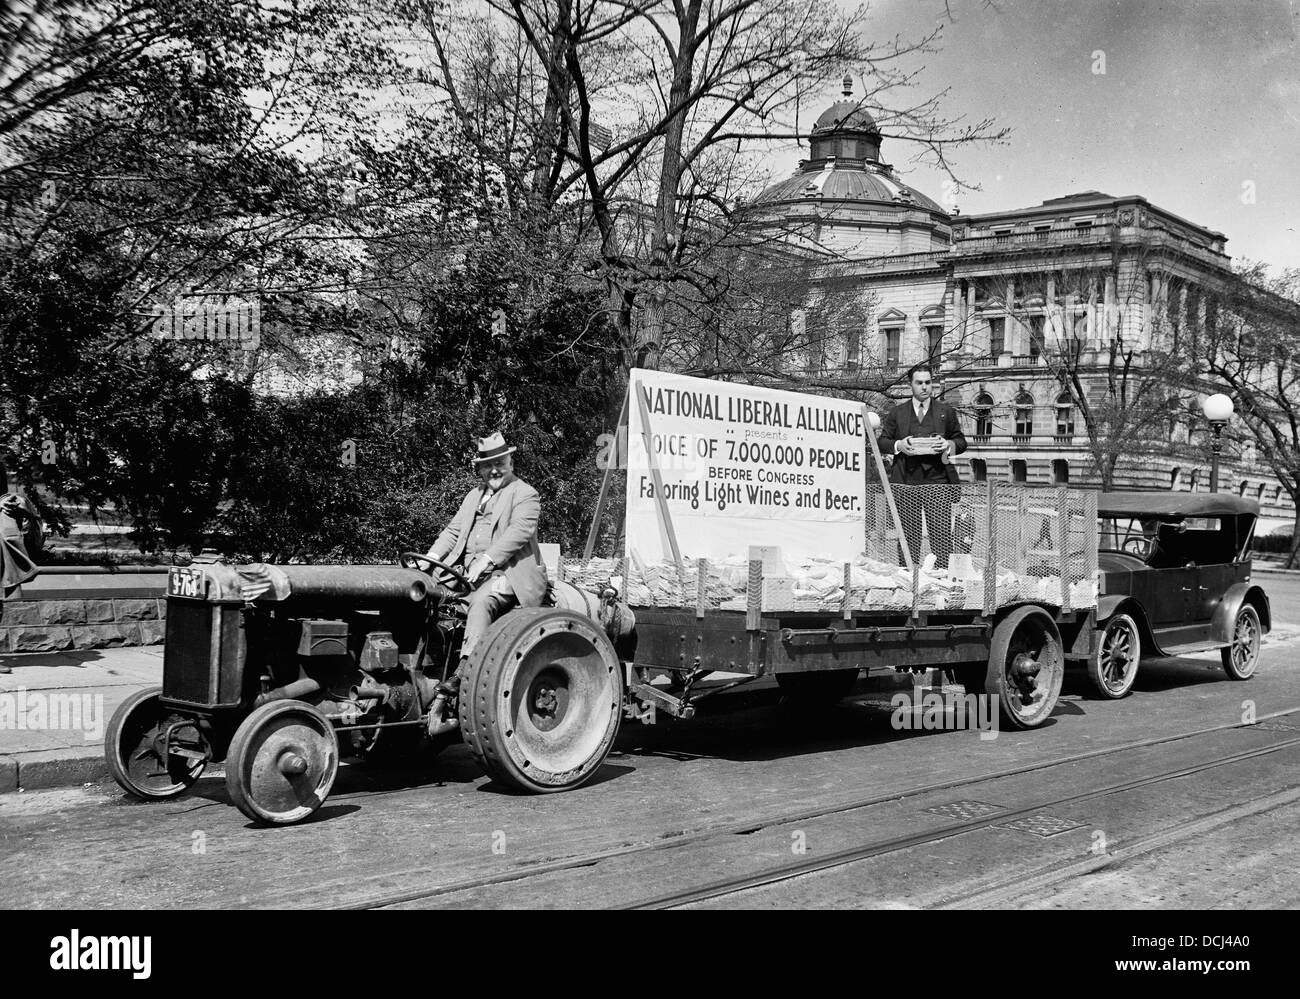 Tractor Pulling Trailer : Tractor pulling trailer with sign national liberal